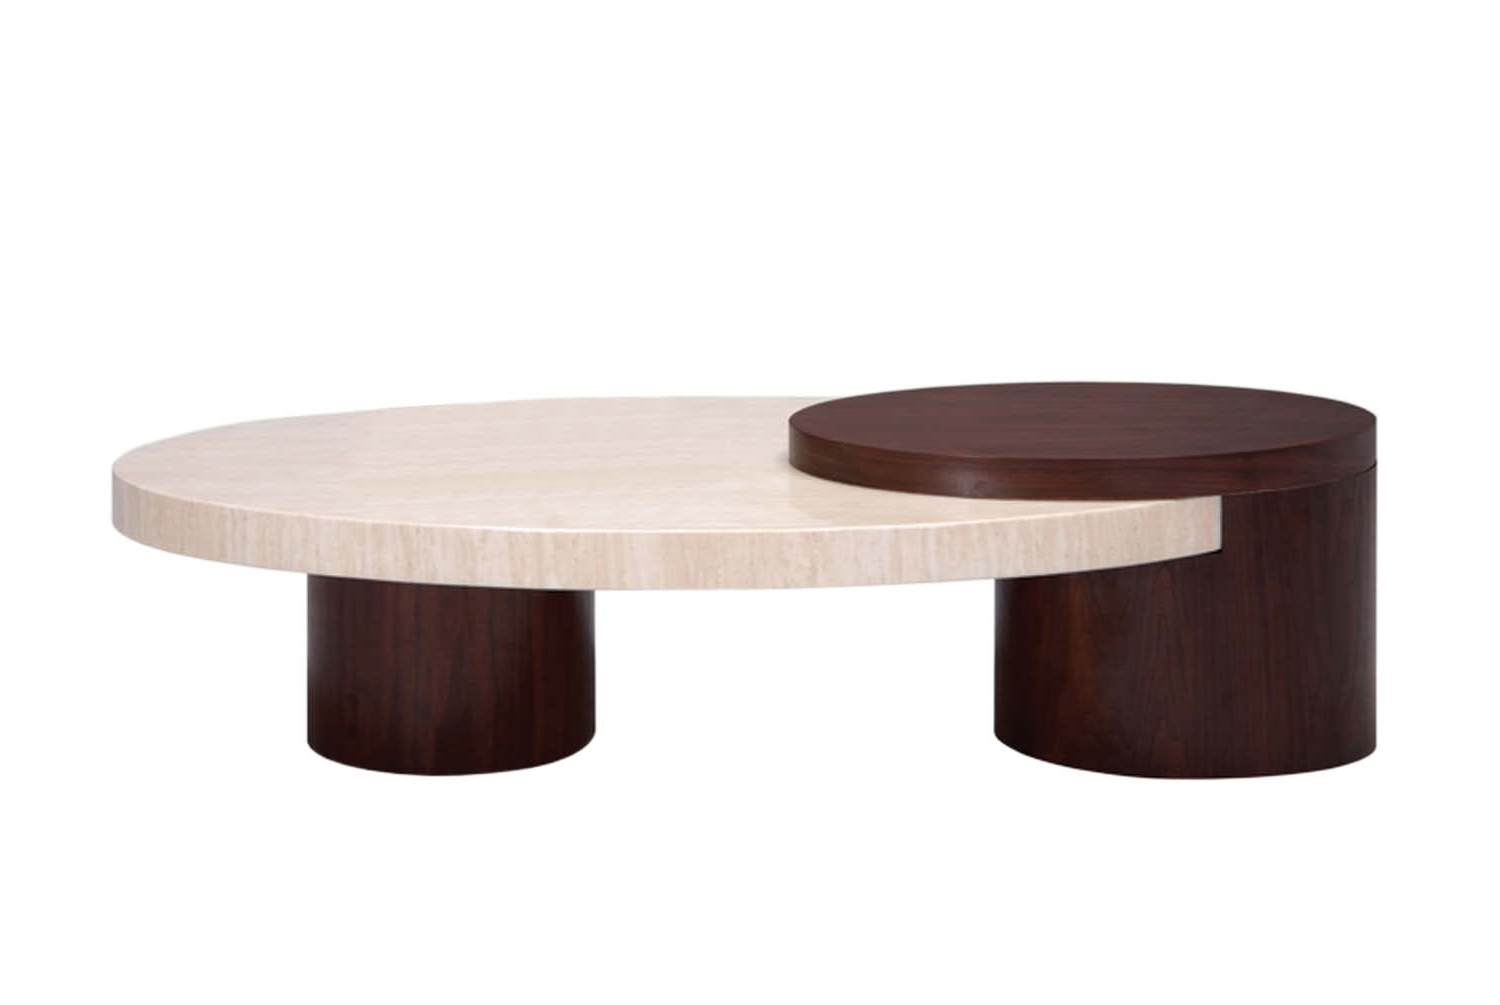 Round Travertine Coffee Table — Sushi Ichimura Decor : Contemporary Within Most Up To Date Chiseled Edge Coffee Tables (View 19 of 20)